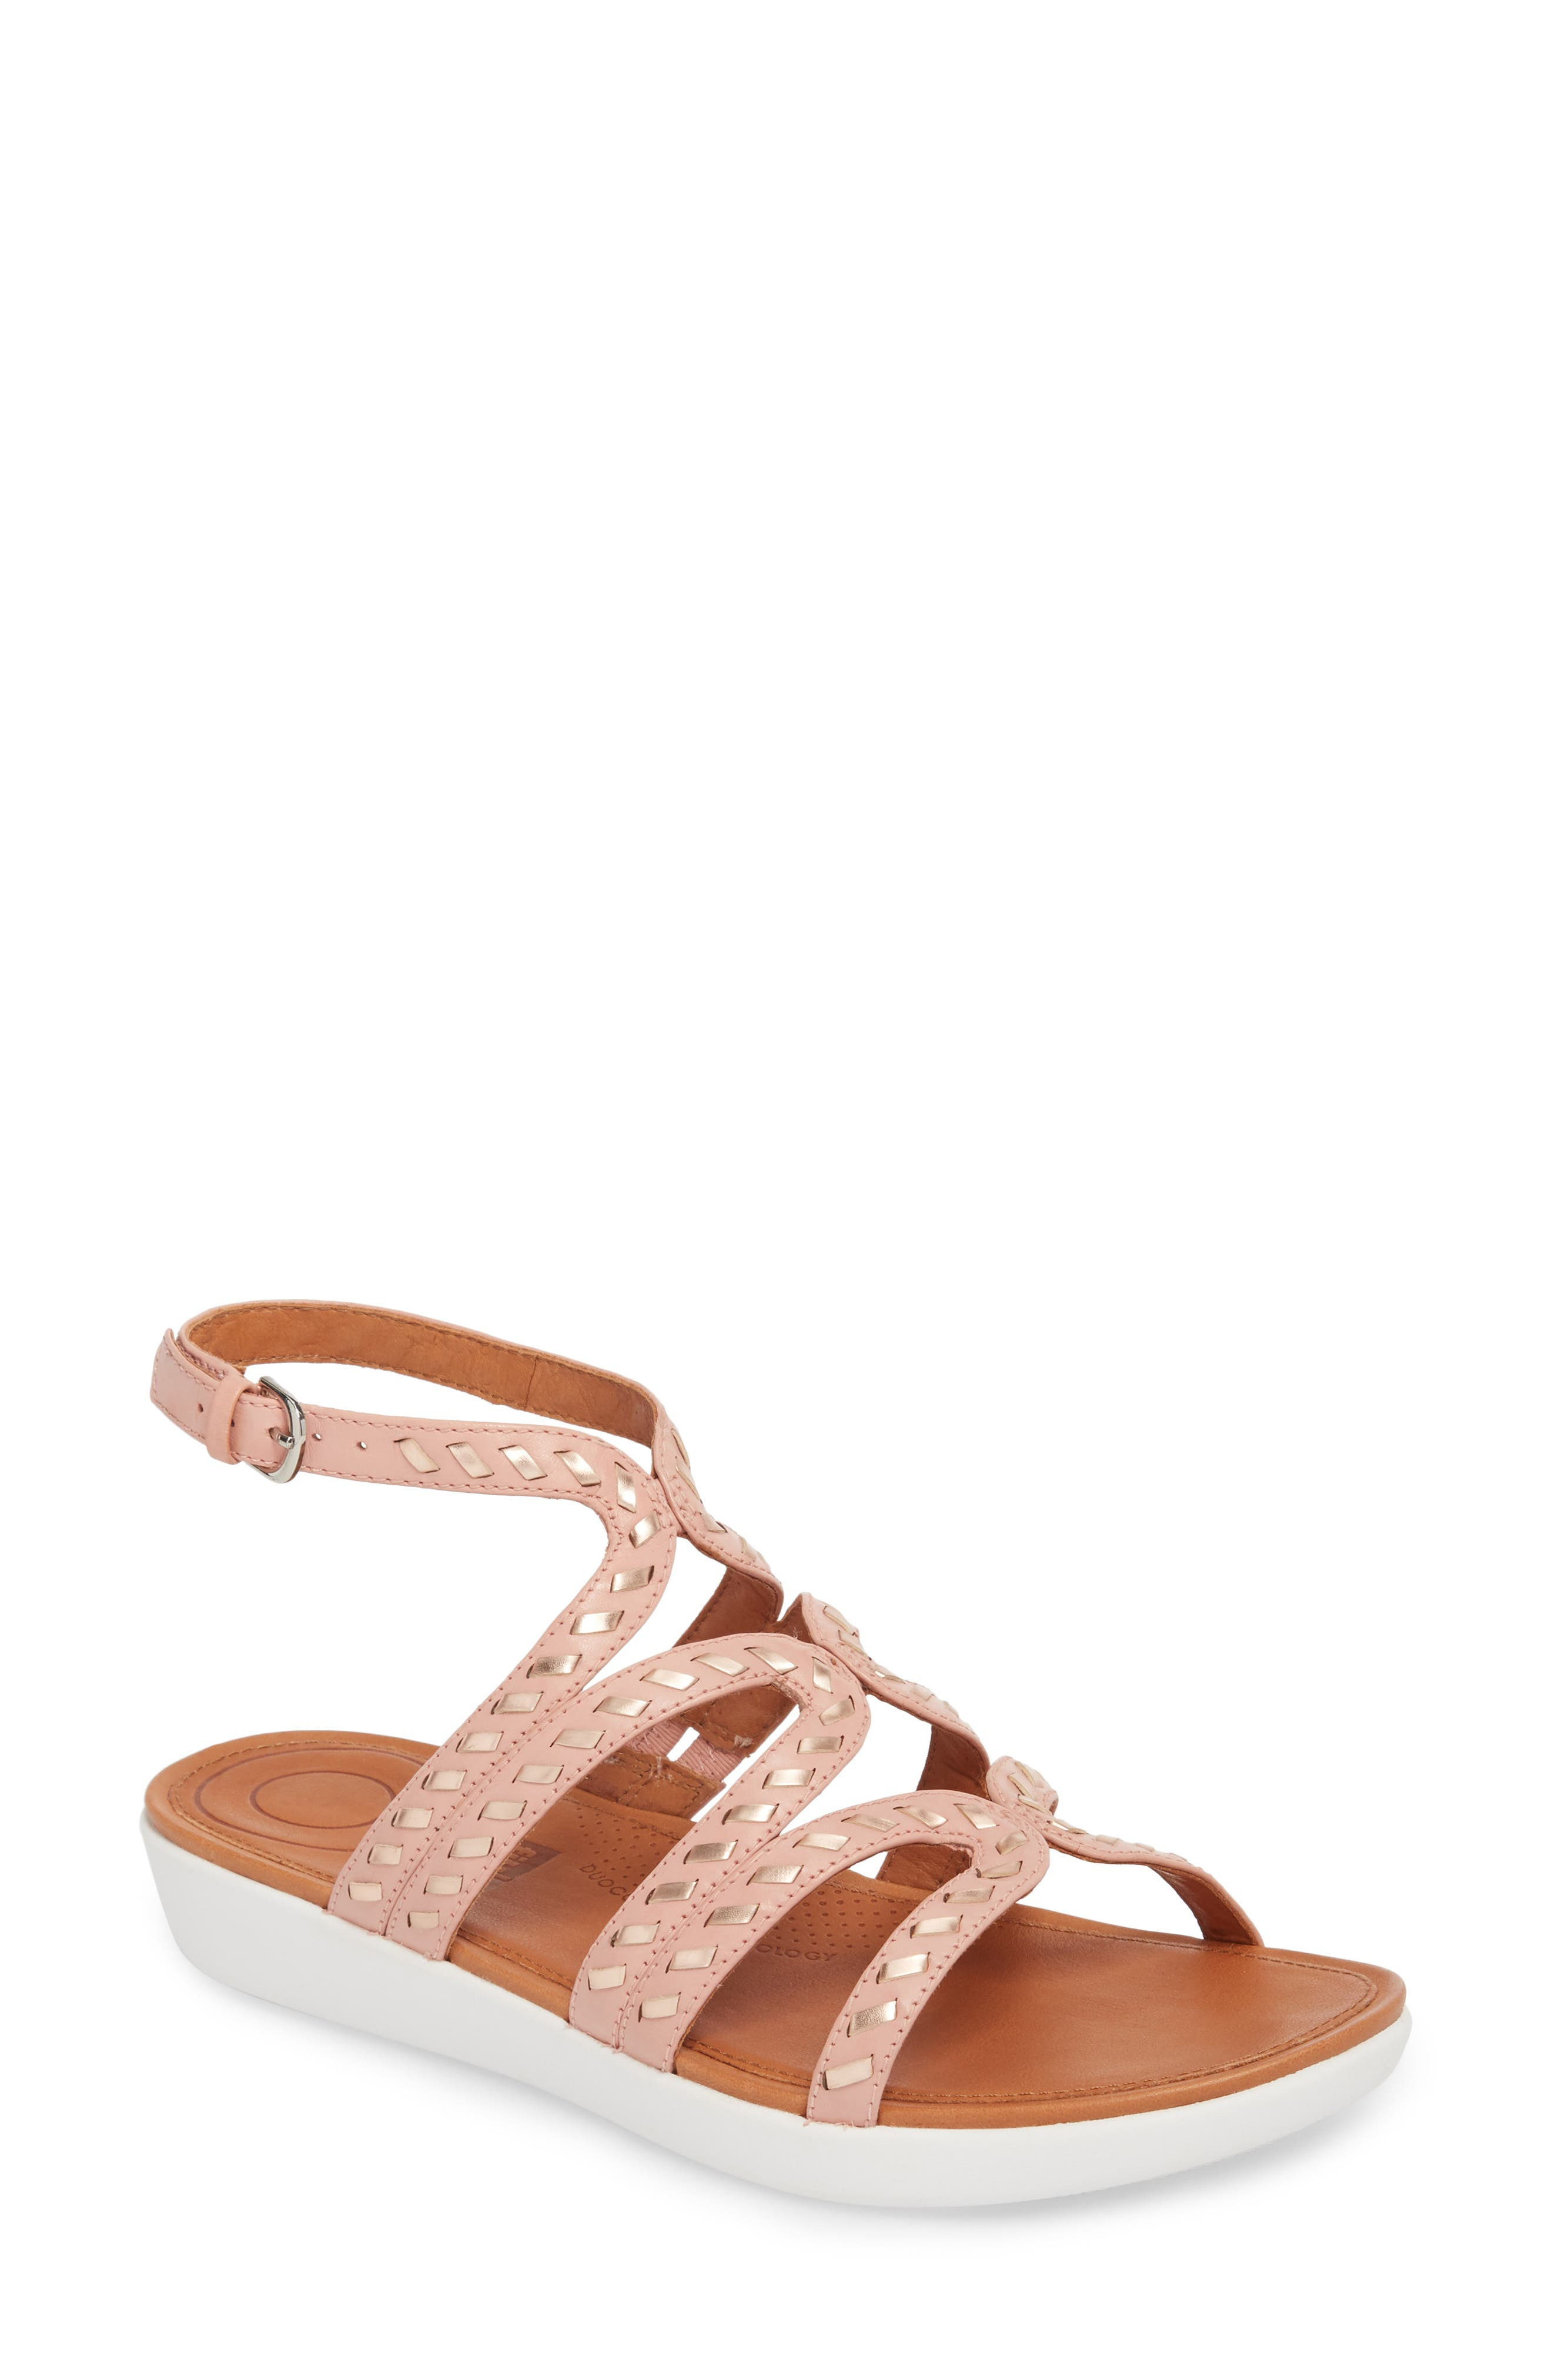 FITFLOP,                             Strata Gladiator Sandal,                             Main thumbnail 1, color,                             DUSKY PINK LEATHER